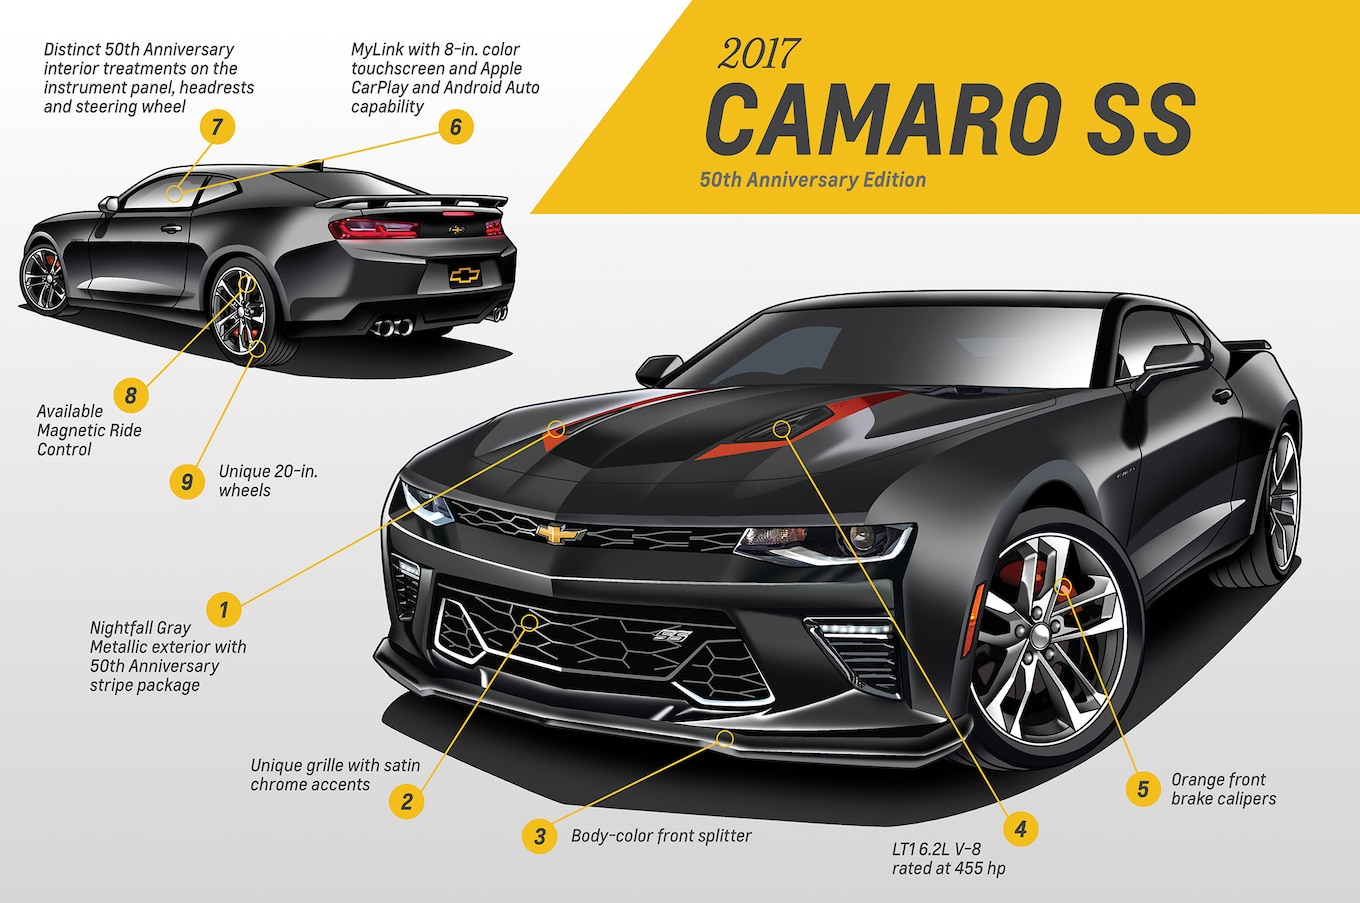 Car Safety Oshawa Chevrolet Camaro Plans 50th Anniversary Party In Detroit